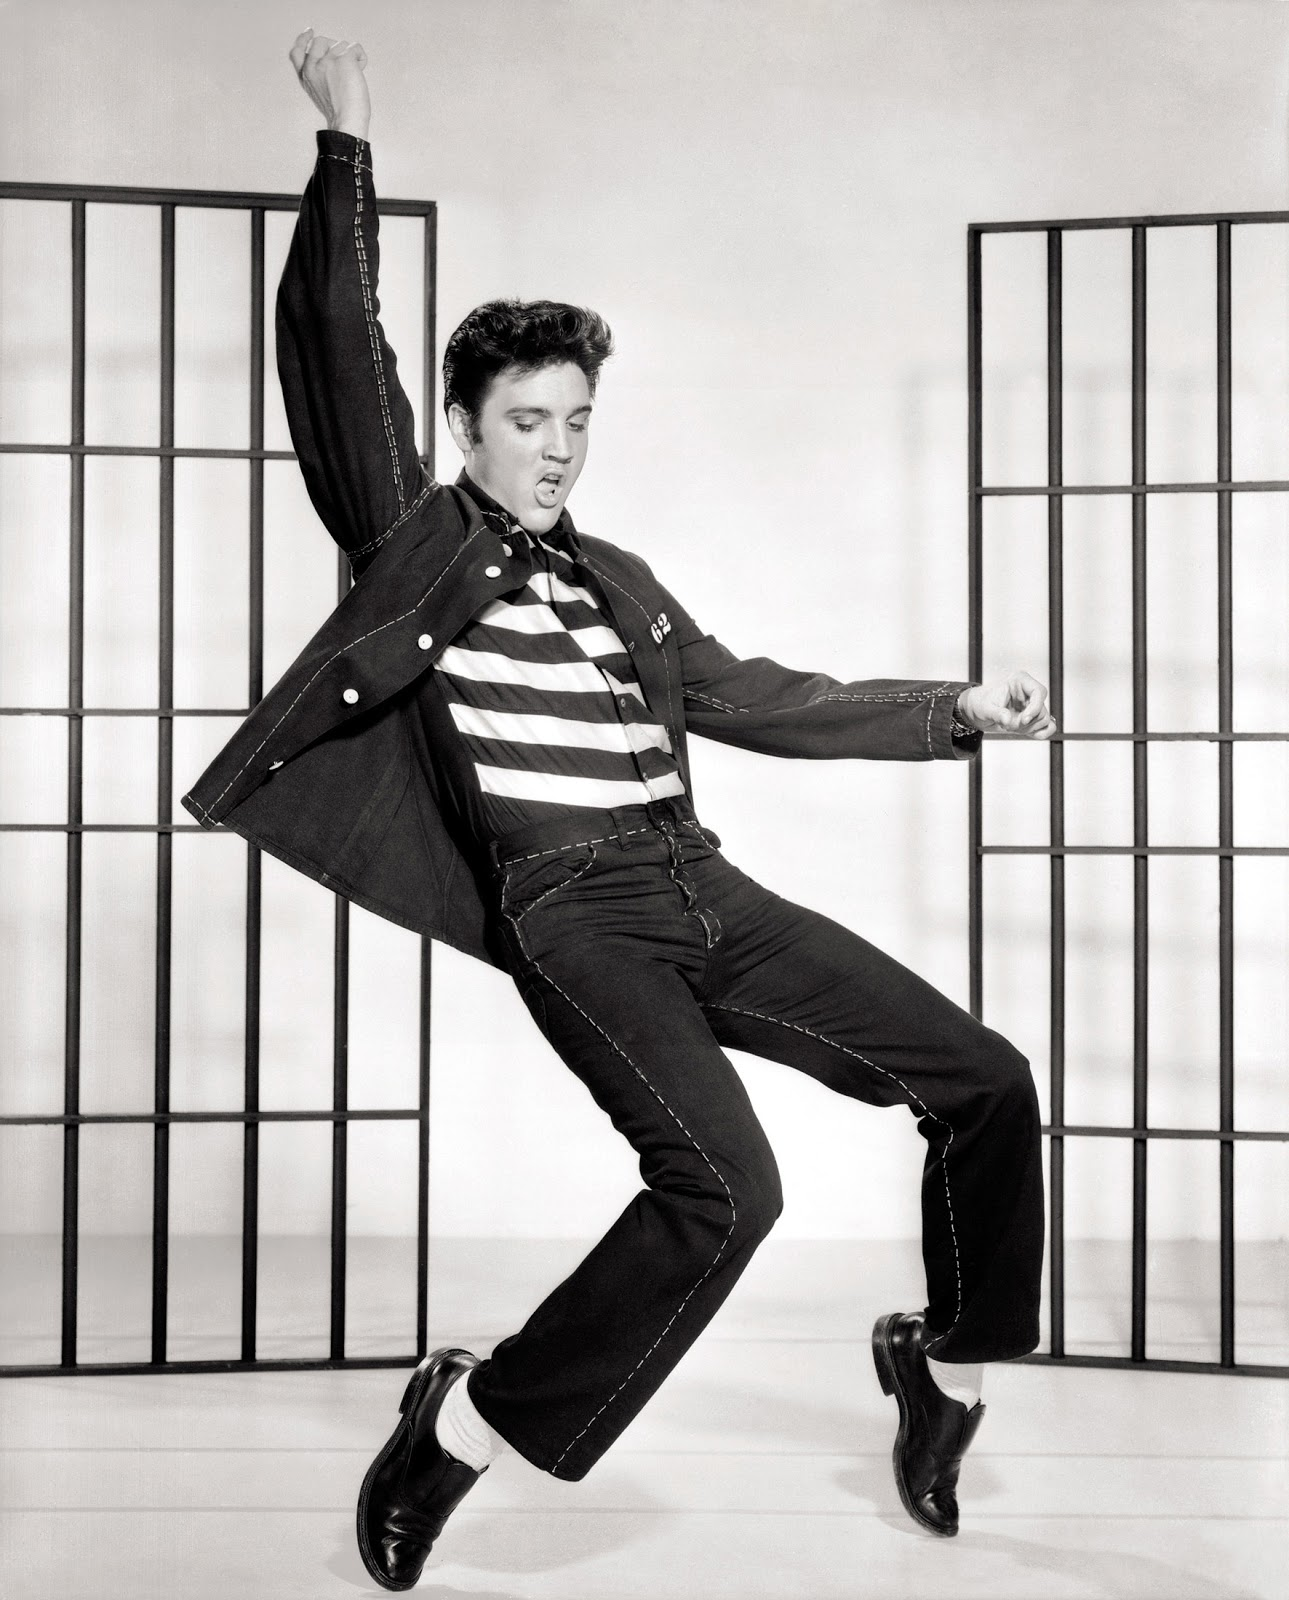 Elvis Presley in a striped T-shirt and matching jeans/jacket set, executes a dance move on tip-toe in front of movie-set jail bars.